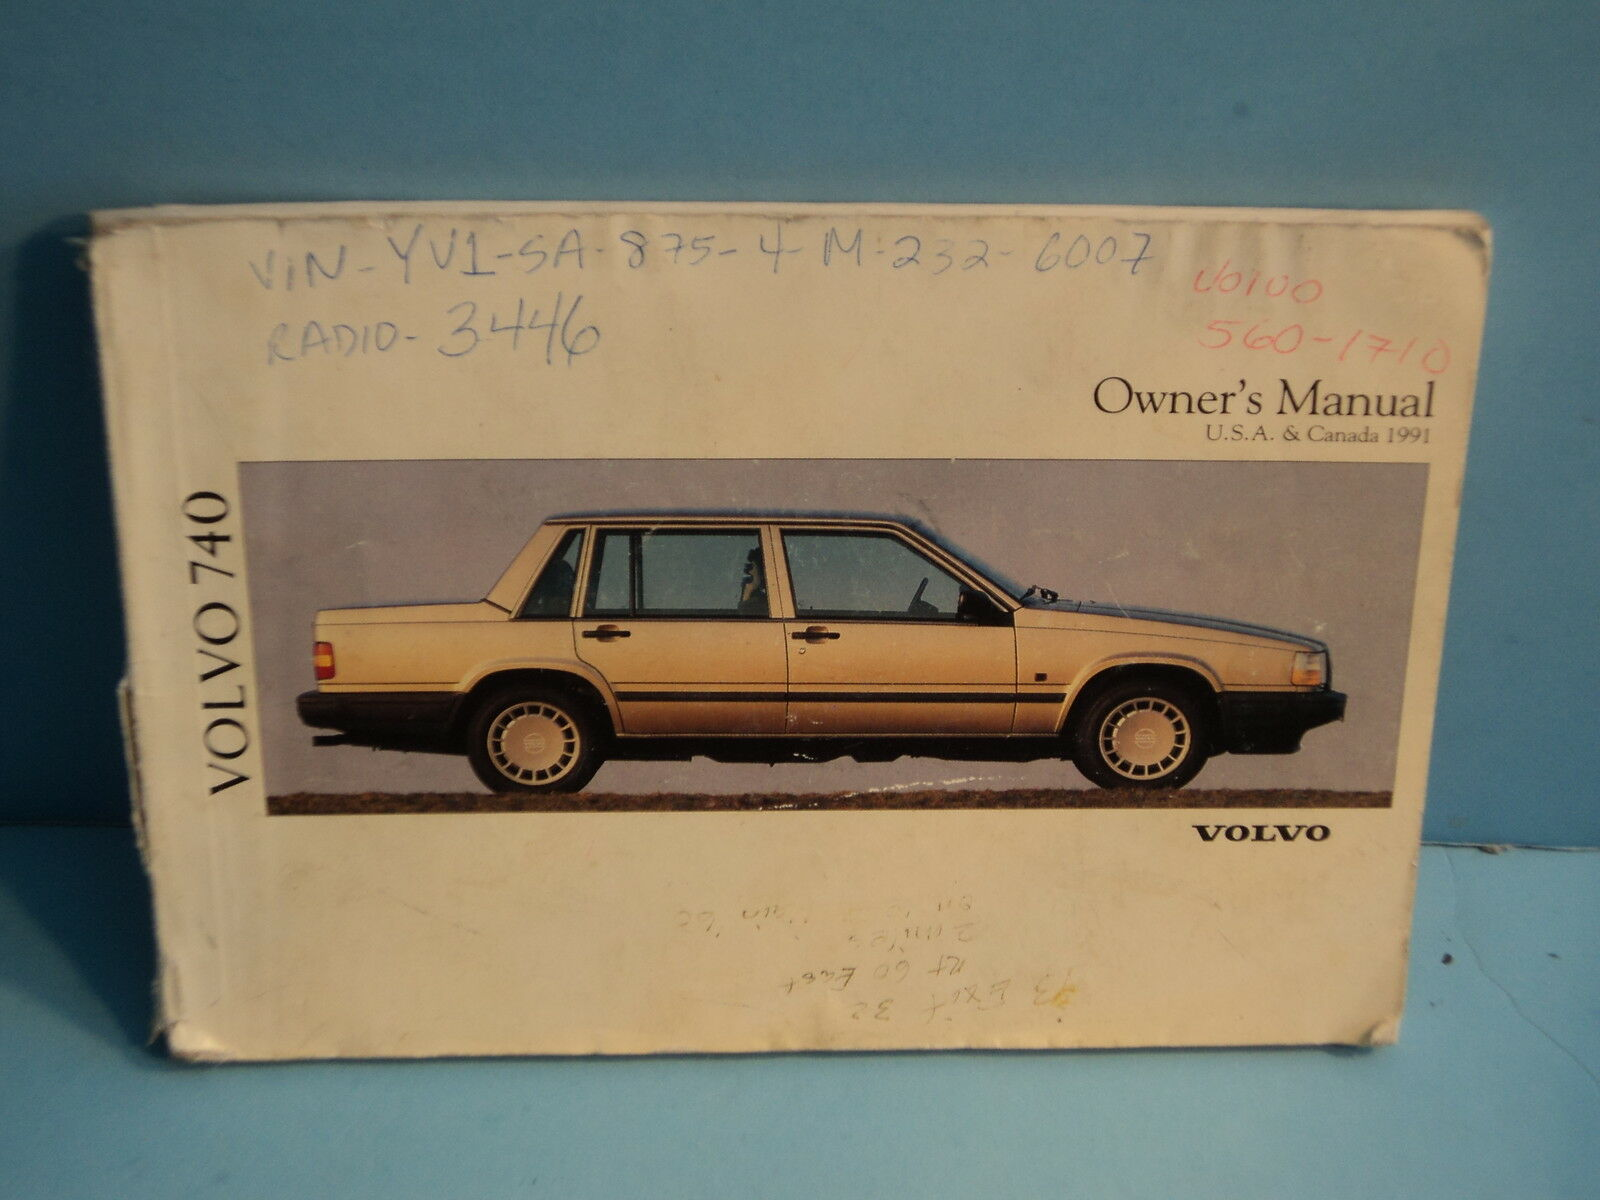 91 1991 Volvo 740 owners manual 1 of 1Only 2 available ...